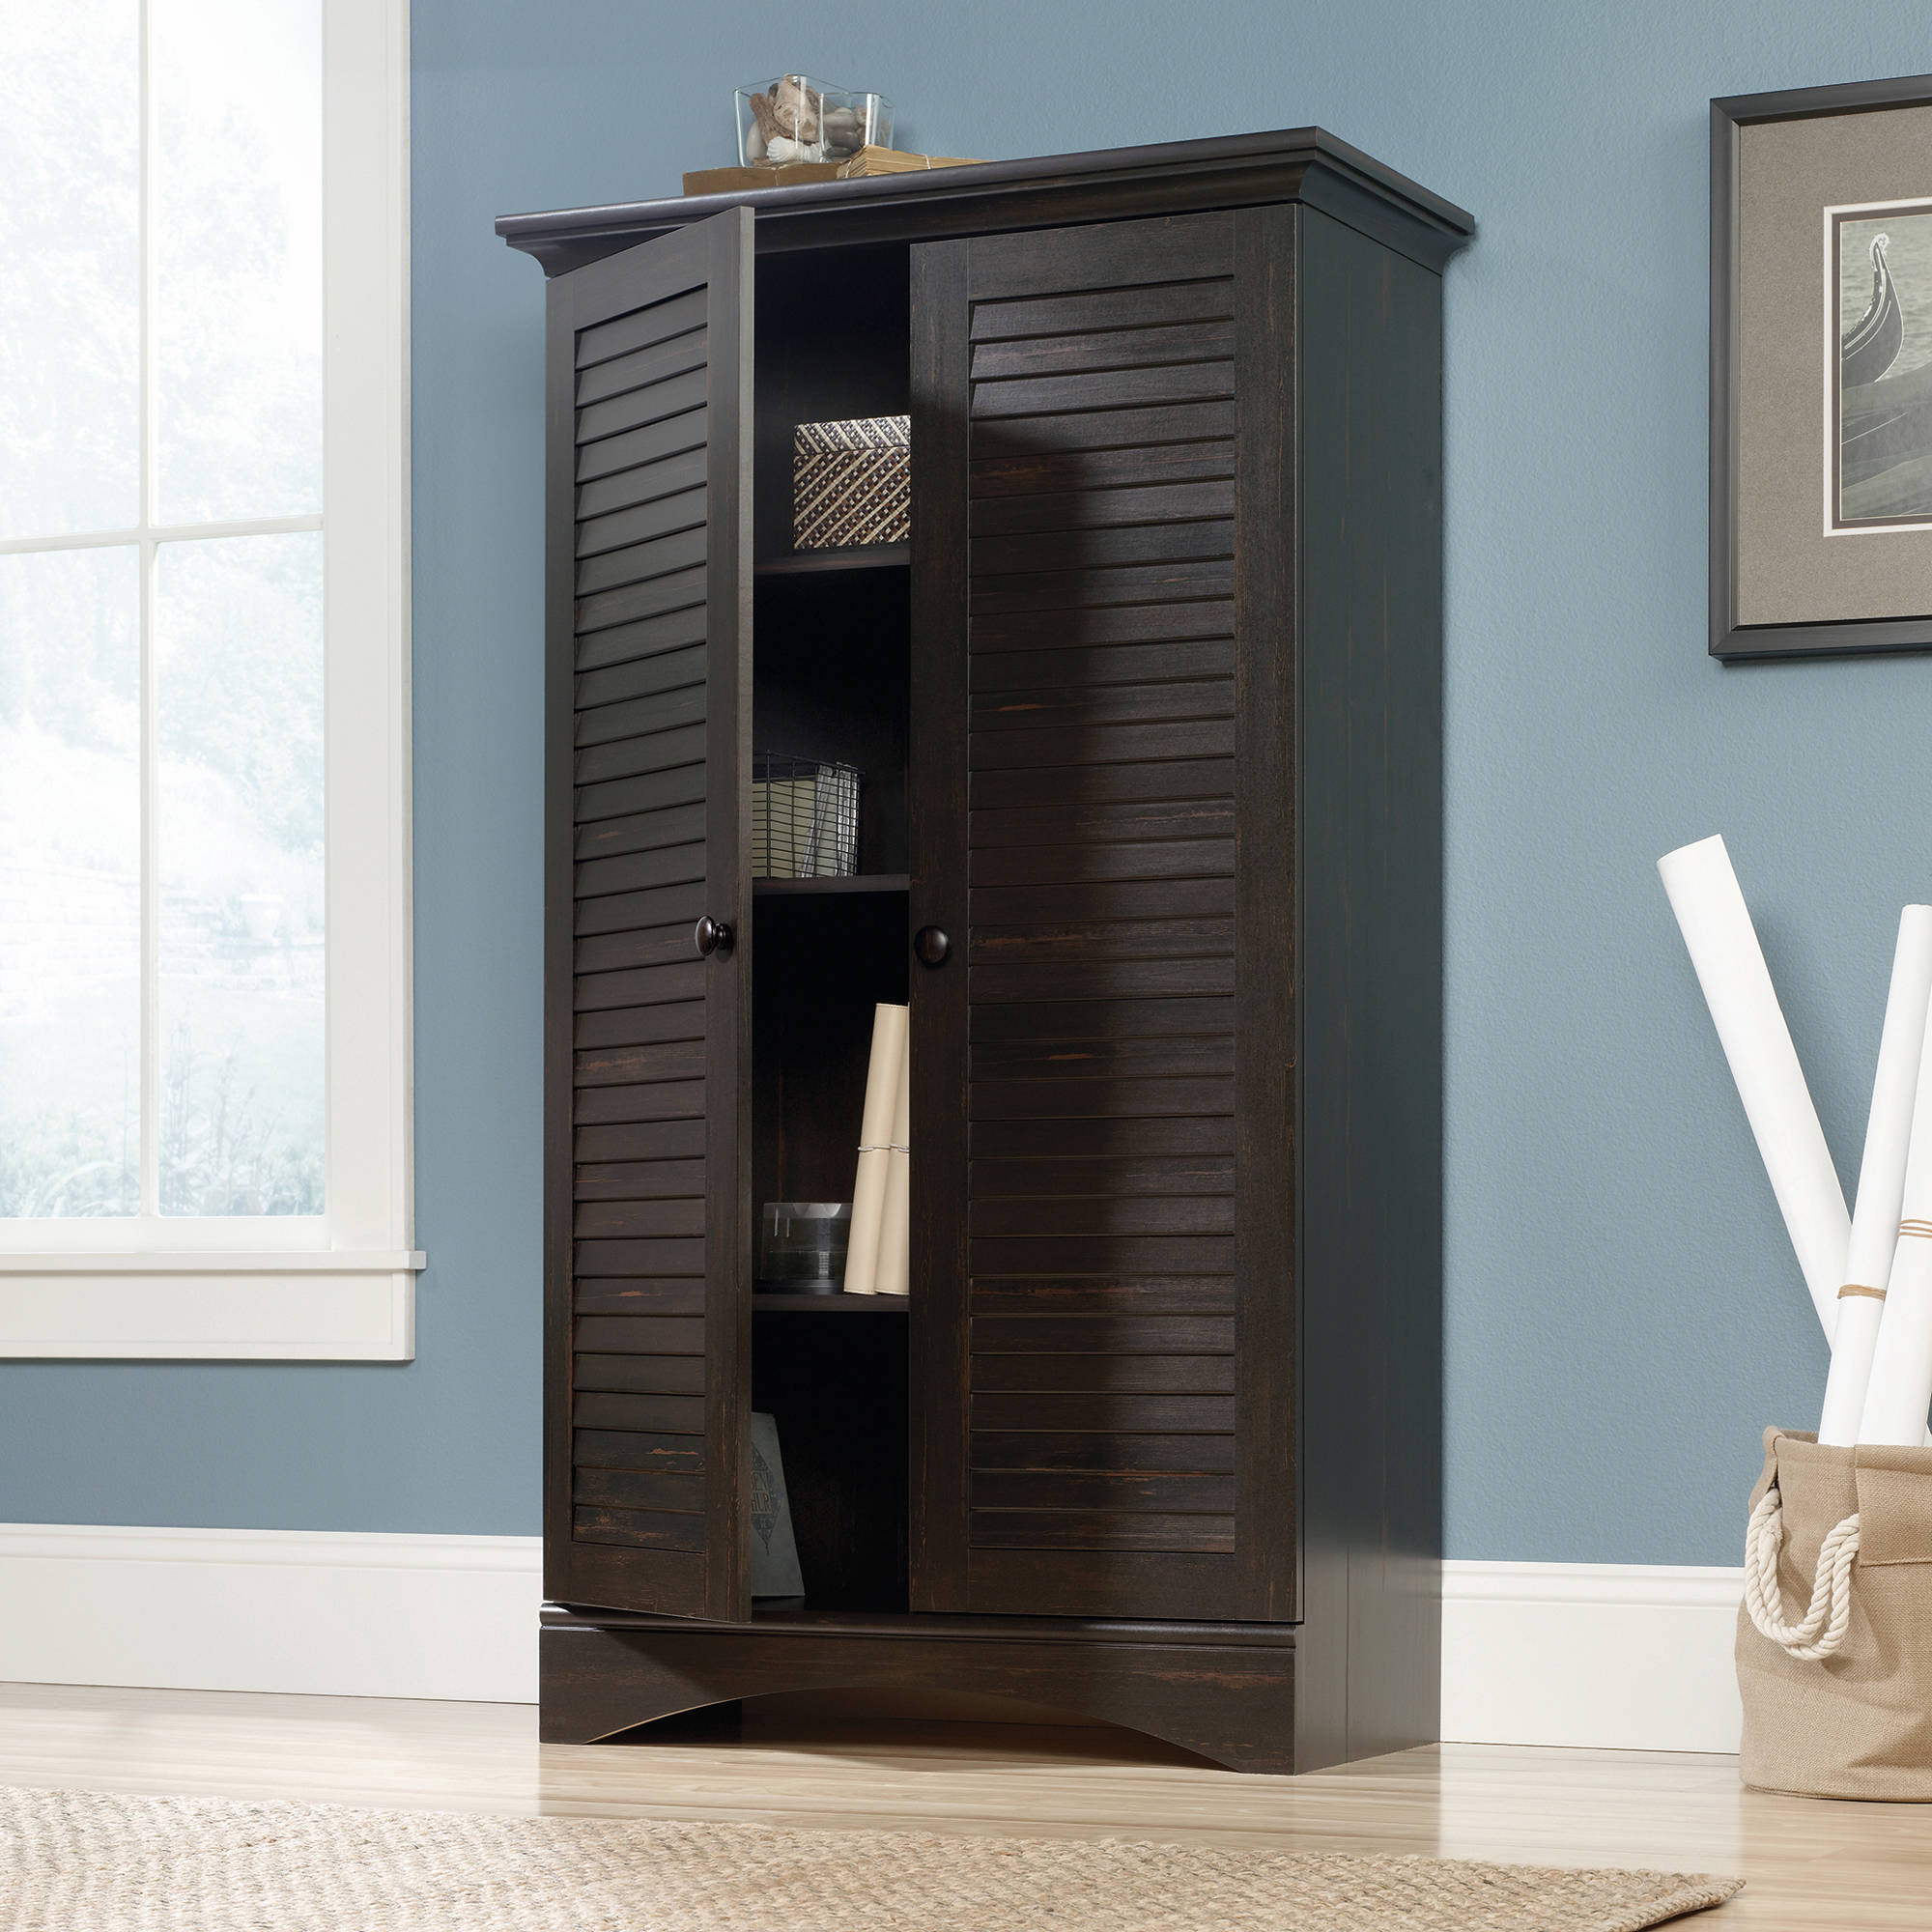 Sauder Harbor View Storage Cabinet Multiple Colors